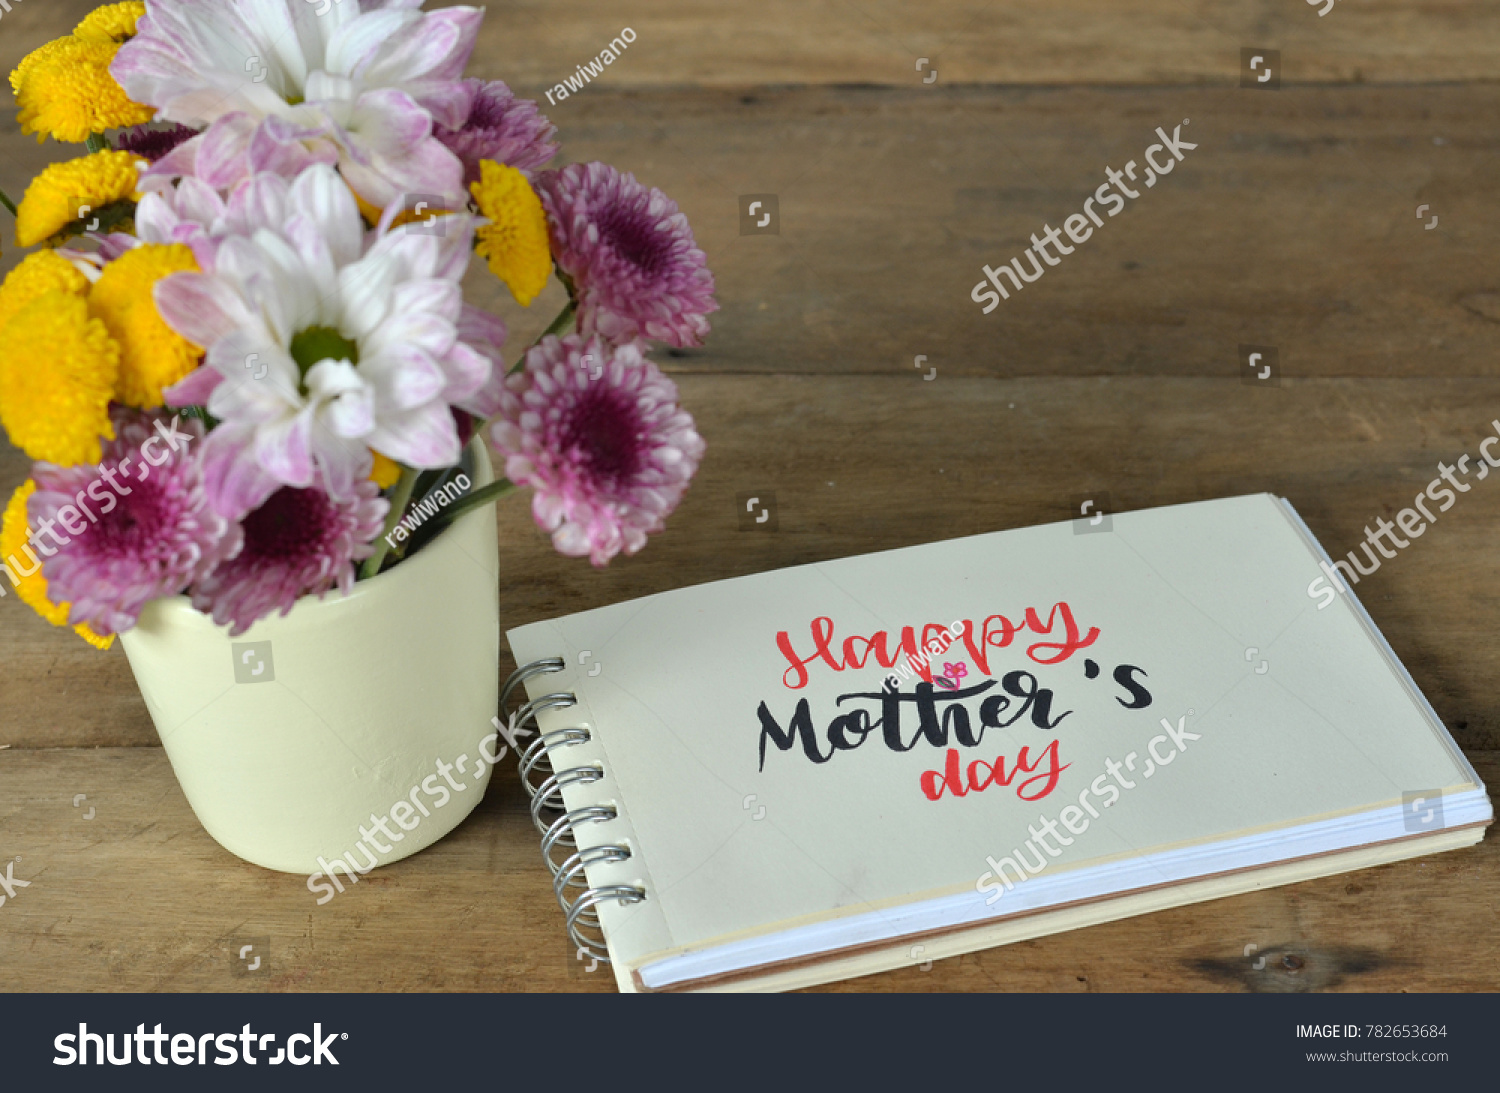 Happy mothers day card greeting words stock photo 782653684 happy mothers day card with greeting words for mom red heart gift box and kristyandbryce Choice Image